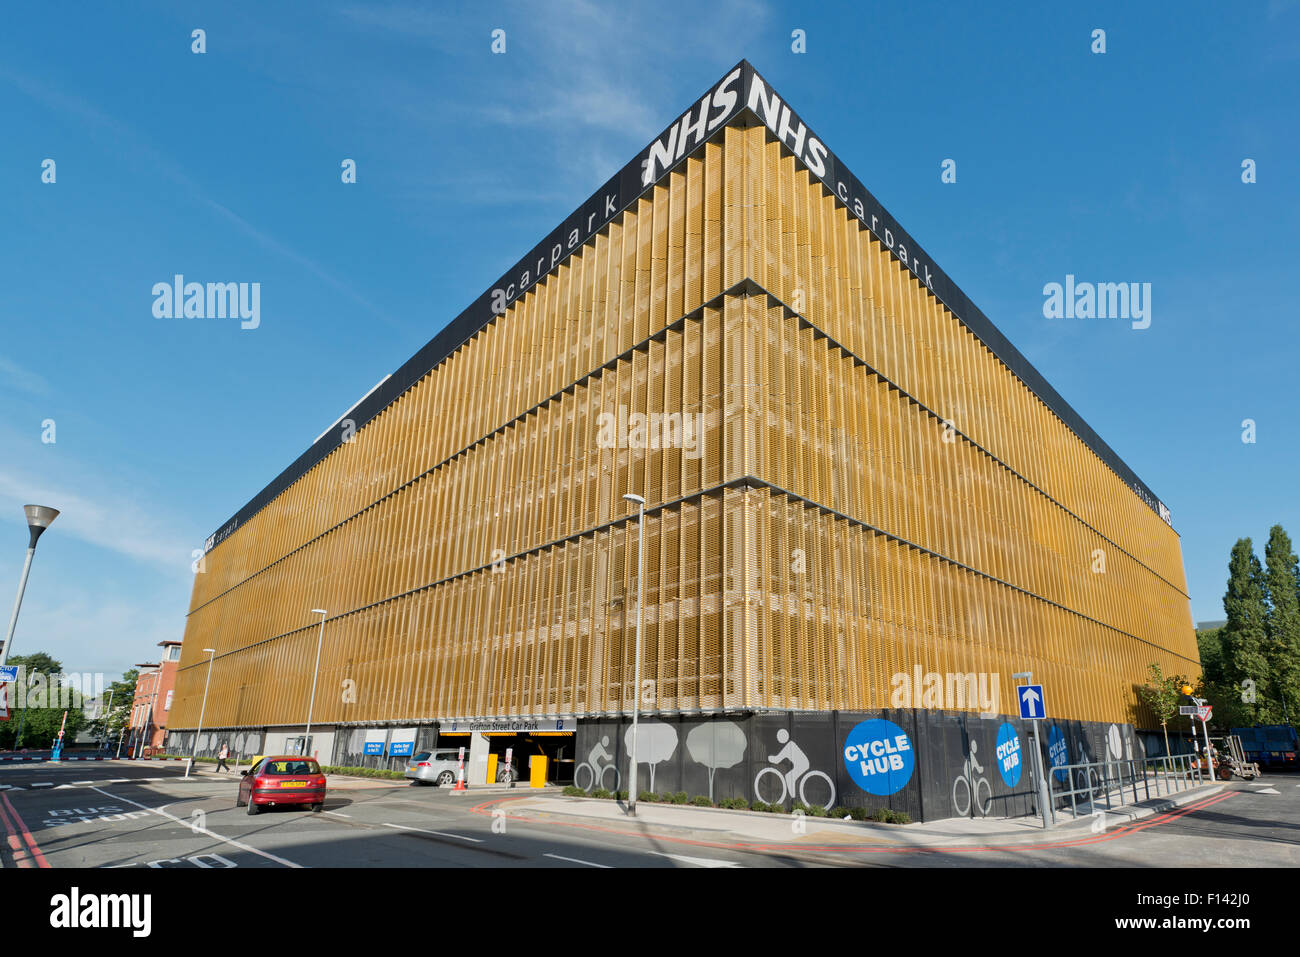 An NHS (National Health Service) car park located near to the Manchester Royal Infirmary hospital off Oxford Road - Stock Image